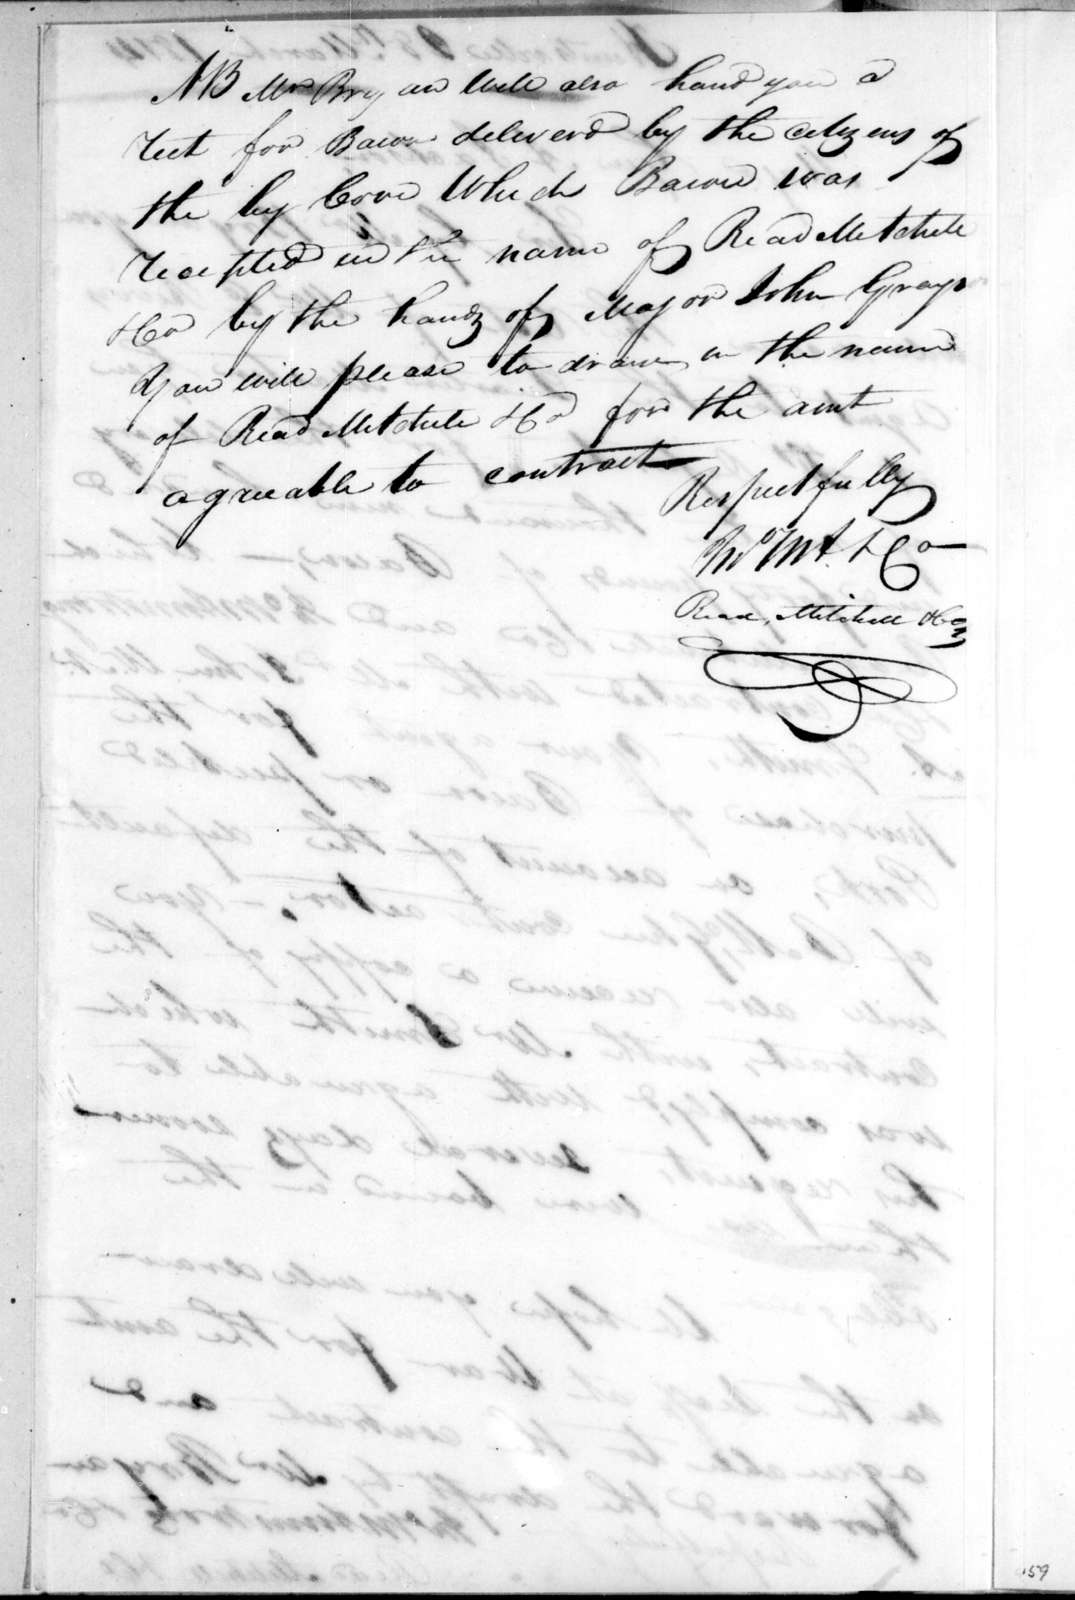 John M. Armstrong to Andrew Jackson, March 28, 1814